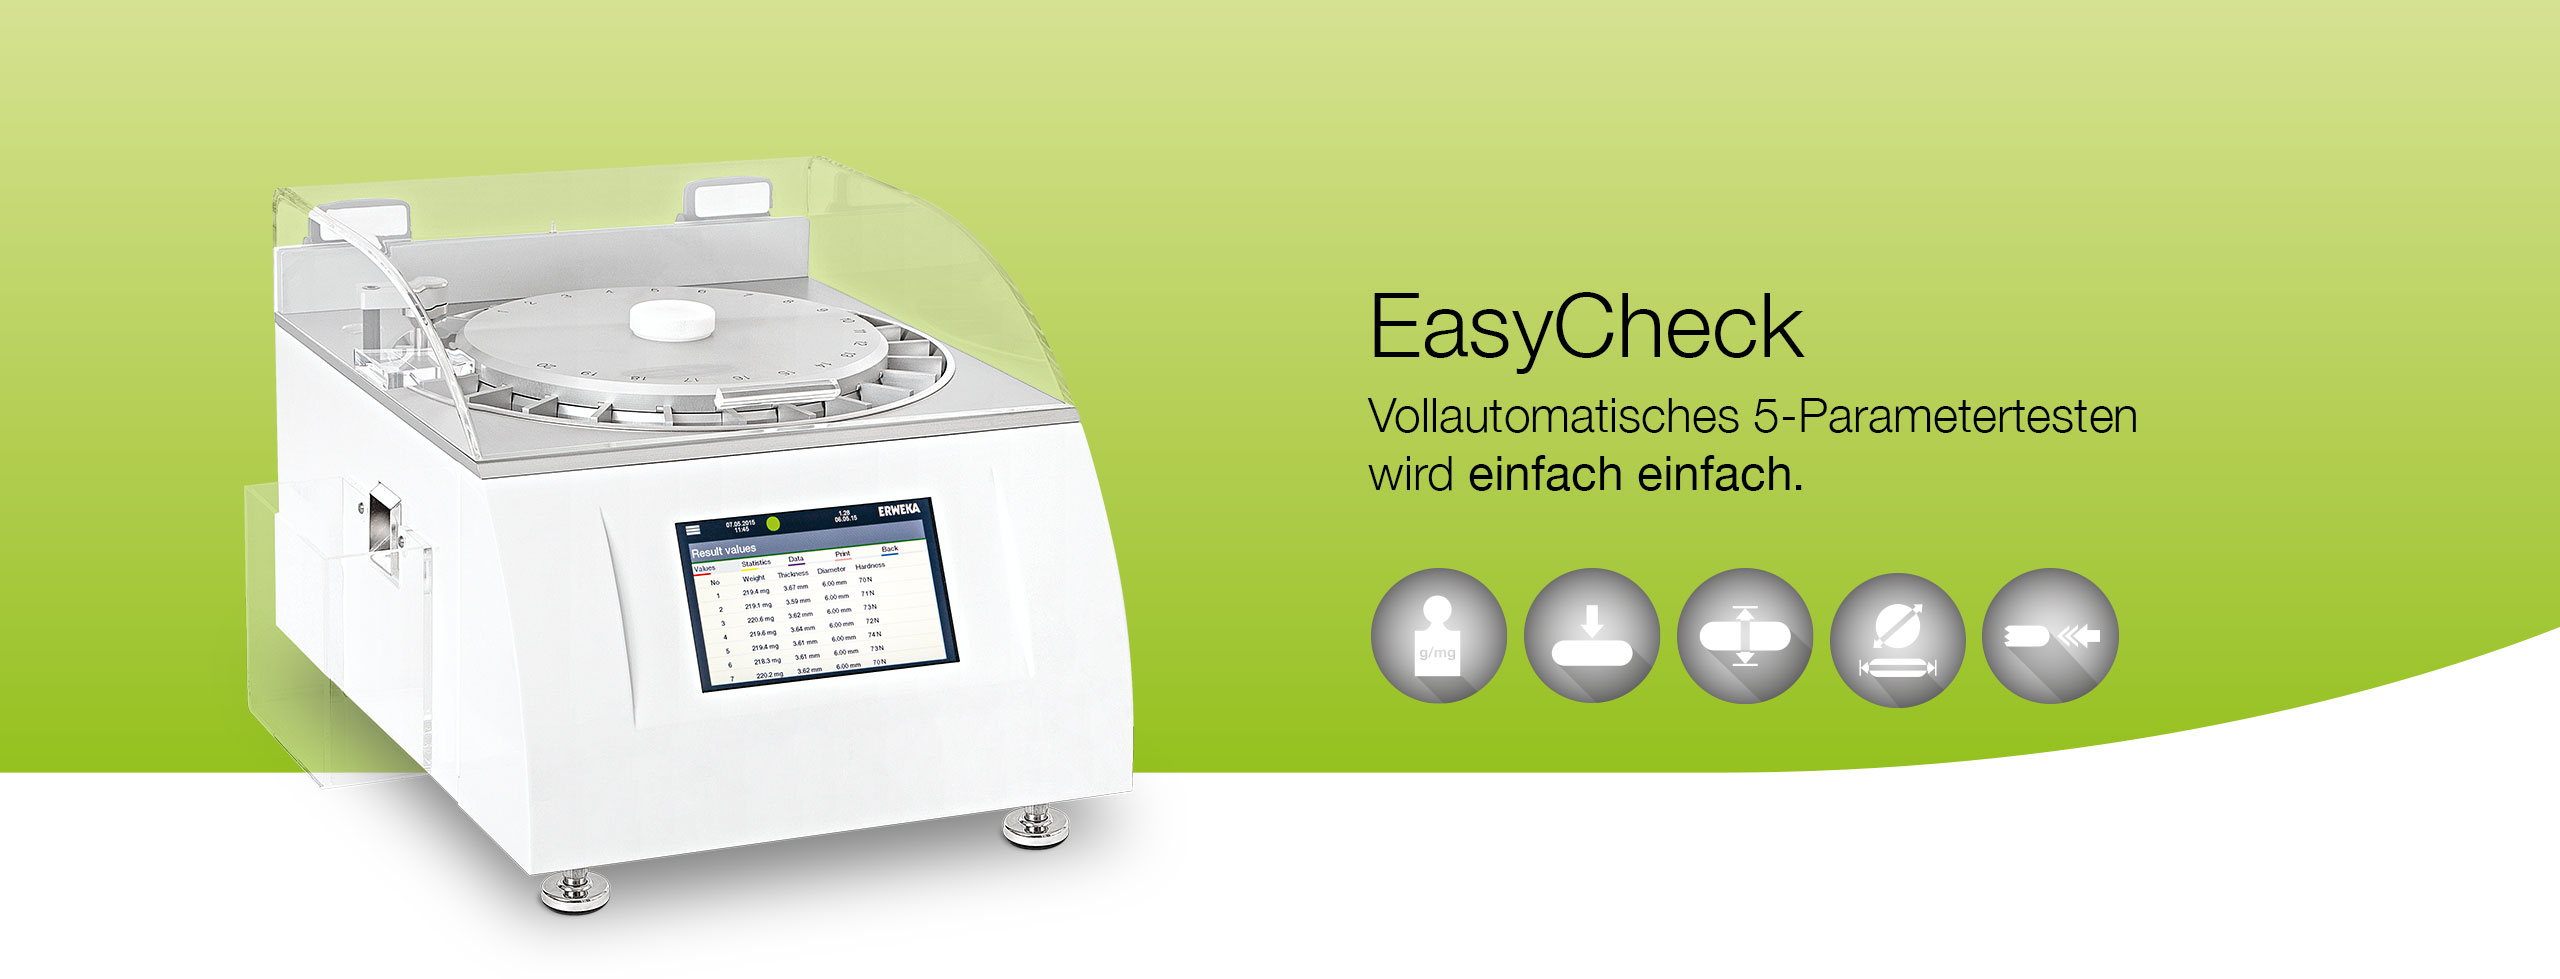 Easycheck Slide Head 979 ENG